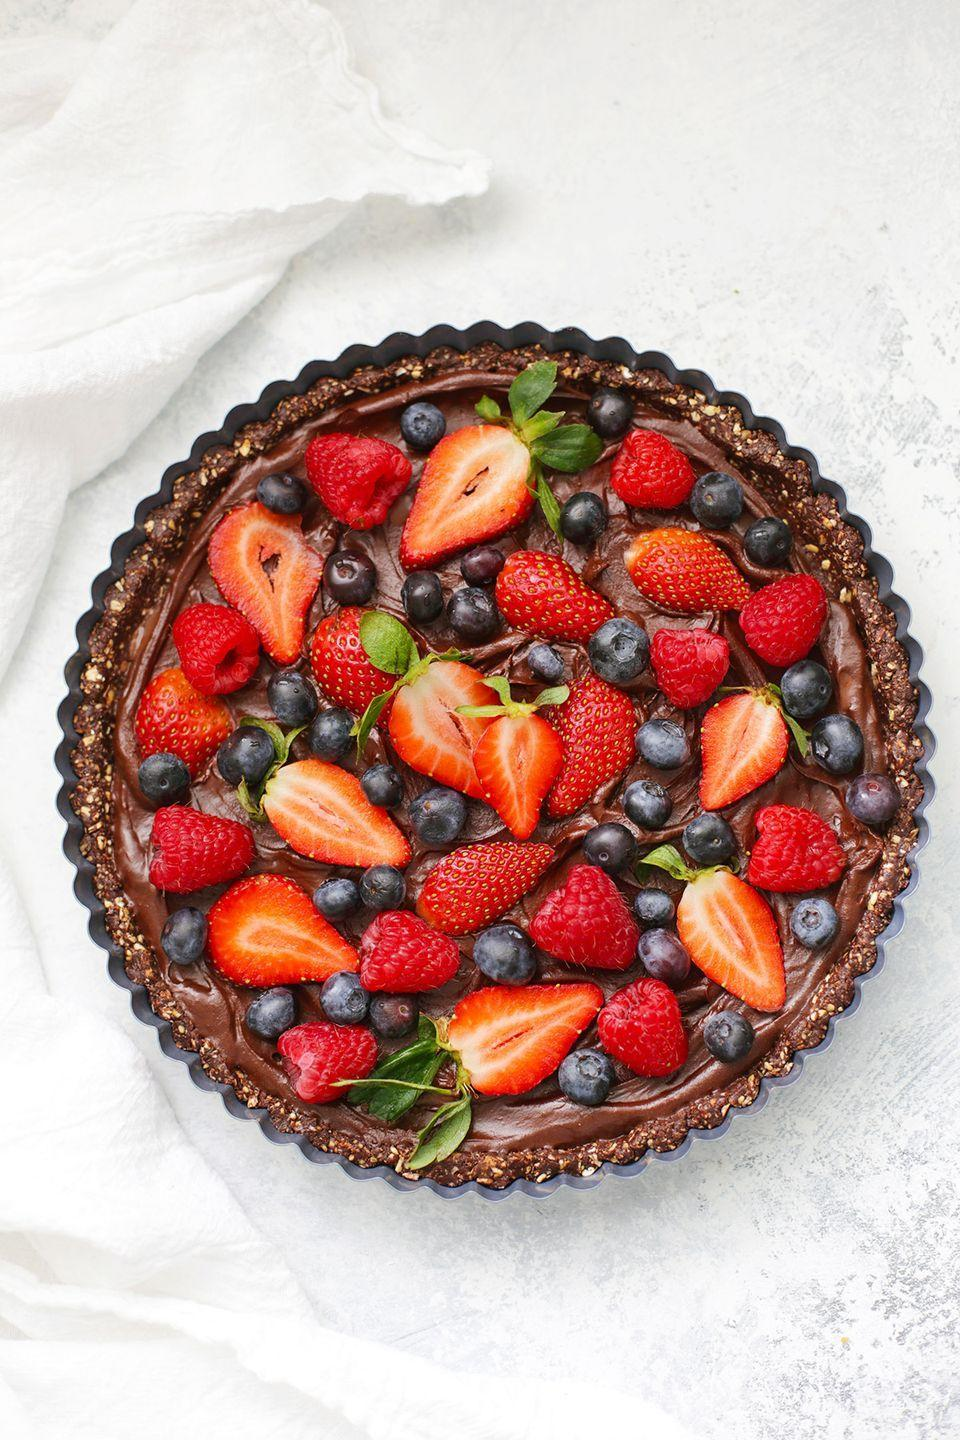 """<p>Need to impress a crowd? This chocolate berry tart is a guaranteed win, no oven required.<br></p><p><a class=""""link rapid-noclick-resp"""" href=""""https://www.onelovelylife.com/chocolate-berry-tart/"""" rel=""""nofollow noopener"""" target=""""_blank"""" data-ylk=""""slk:GET THE RECIPE"""">GET THE RECIPE</a></p><p><em>Per serving: 209 calories, 10.9 g fat, 28.1 g carbs, 77.7 mg sodium, 12.3 g sugar, 4.8 g fiber, 3.5 g protein</em></p>"""